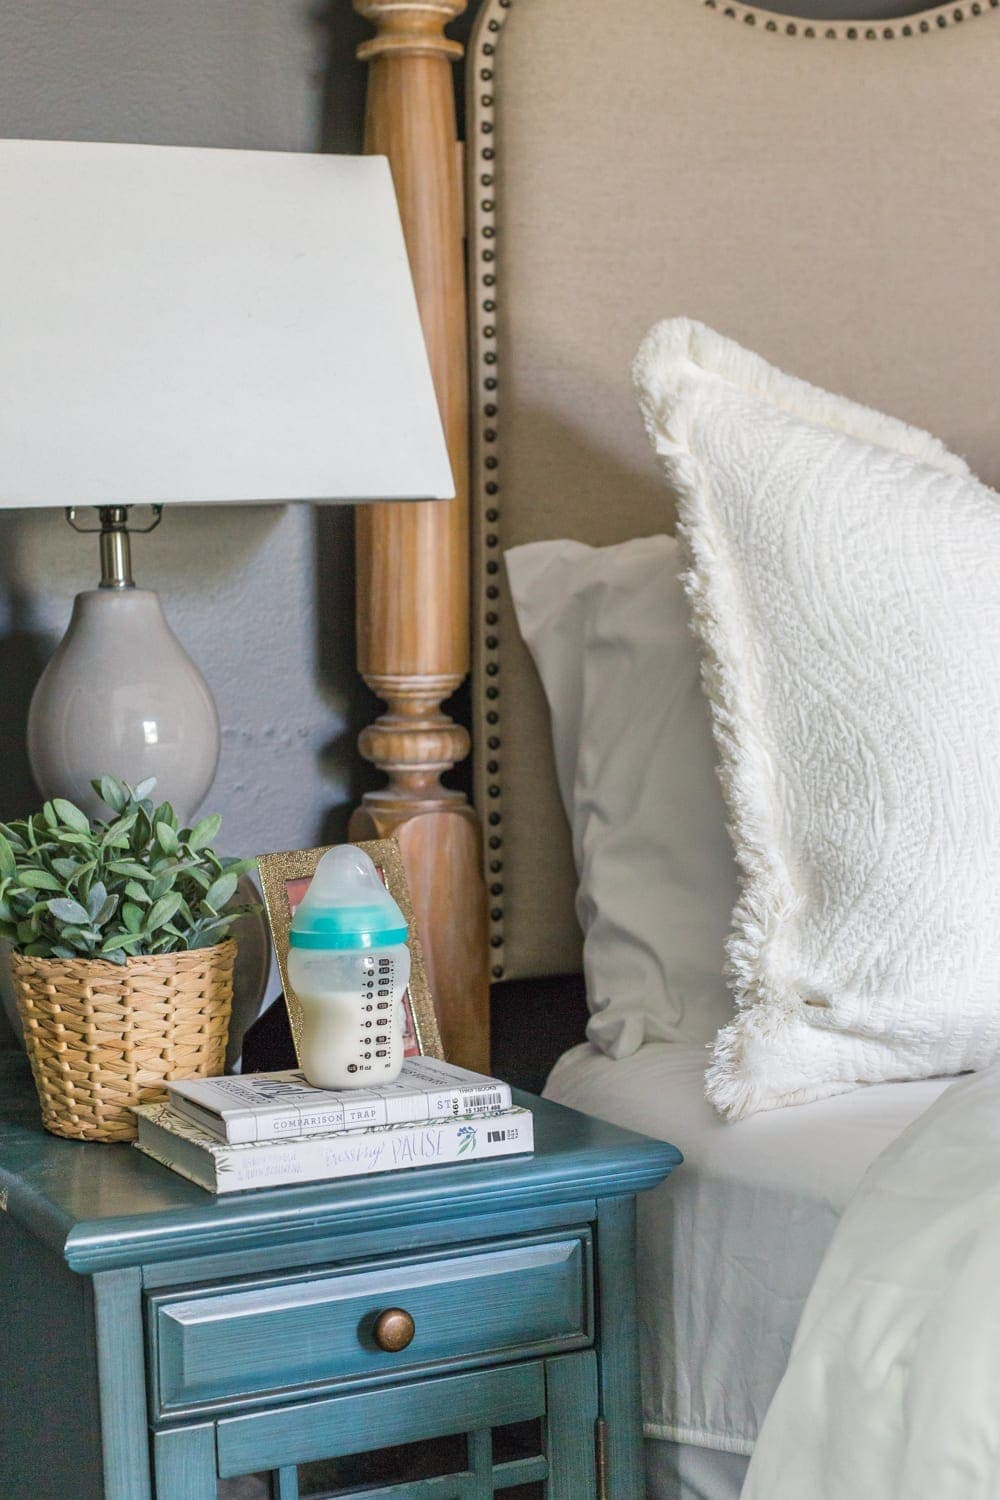 Exclusive Pumping Hack - Keep a bottle of fresh pumped milk on the nightstand for up to 6 hours for middle-of-the-night feedings.